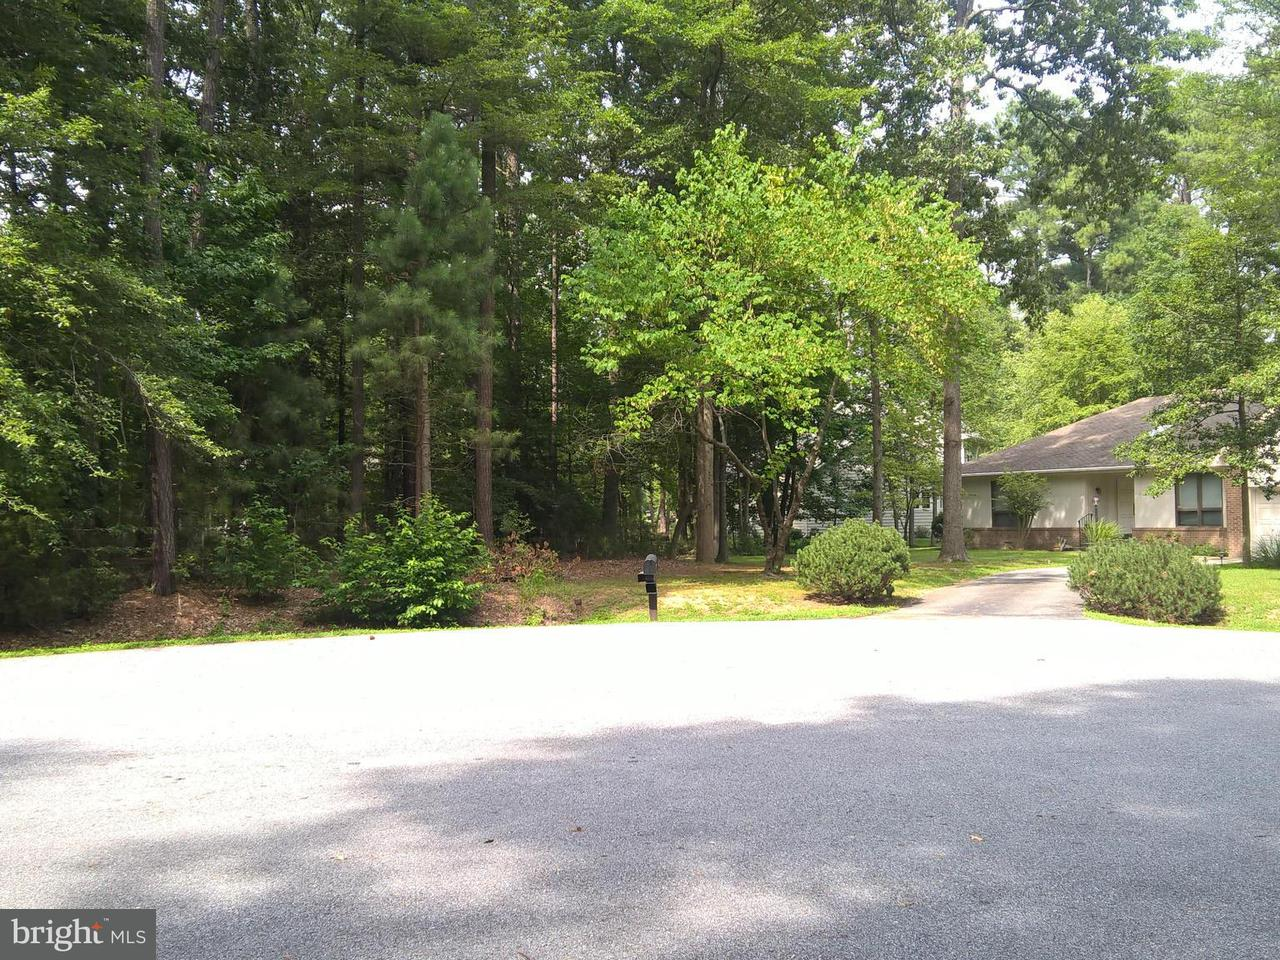 Land for Sale at 14730 Locust Ct Issue, Maryland 20645 United States